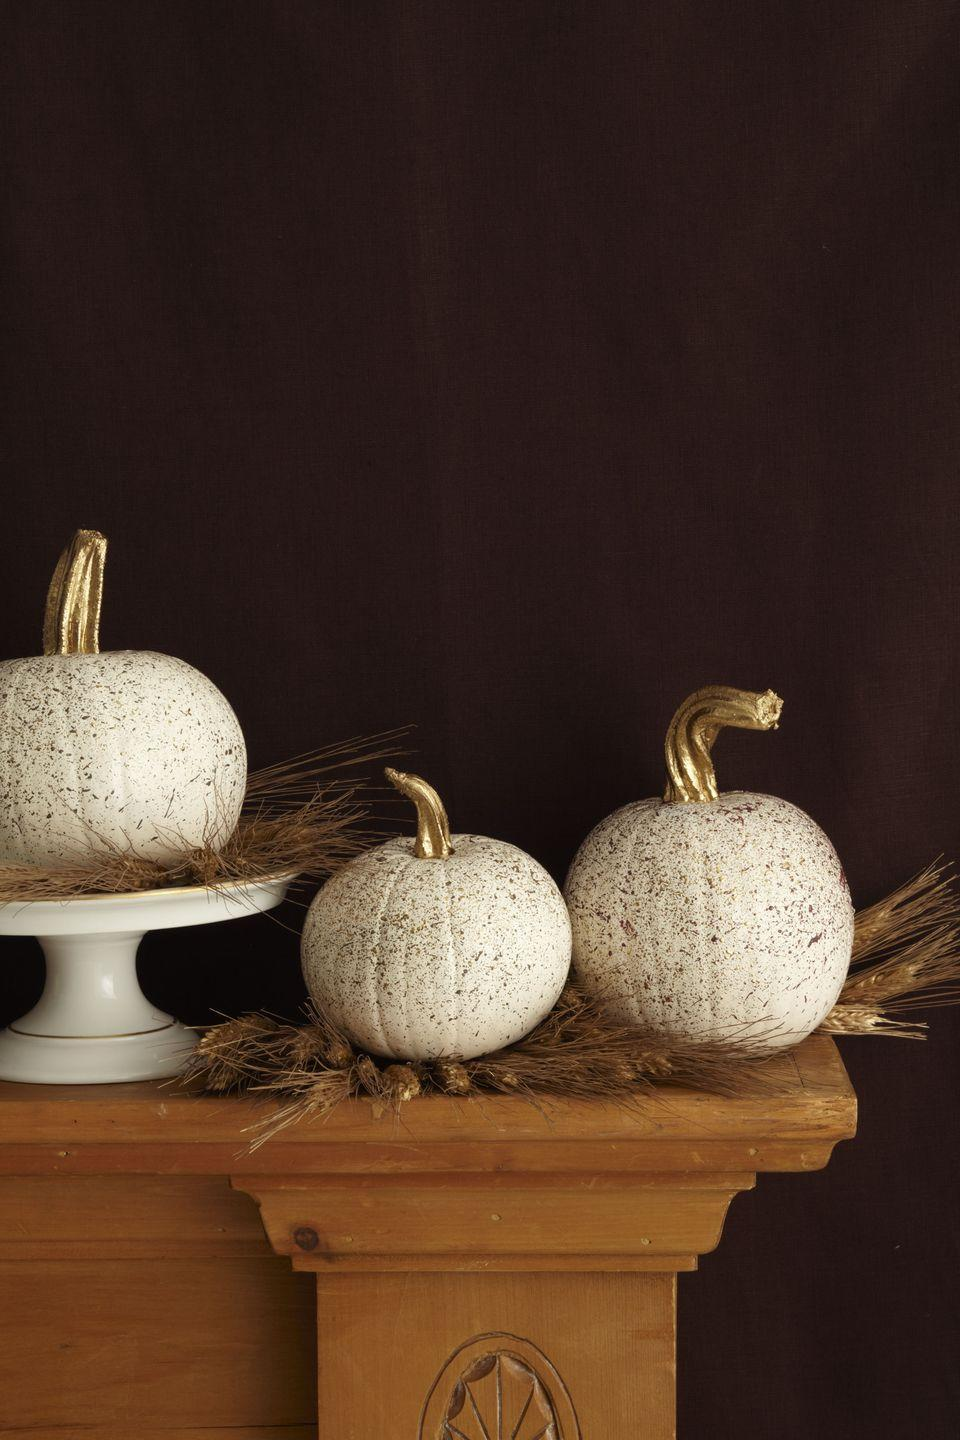 <p>Keep it lowkey with a simple arrangement of white pumpkins splattered with gold paint, arrange atop wheat on your mantel. Paint the stems gold too, for an extra sparkling touch. </p>